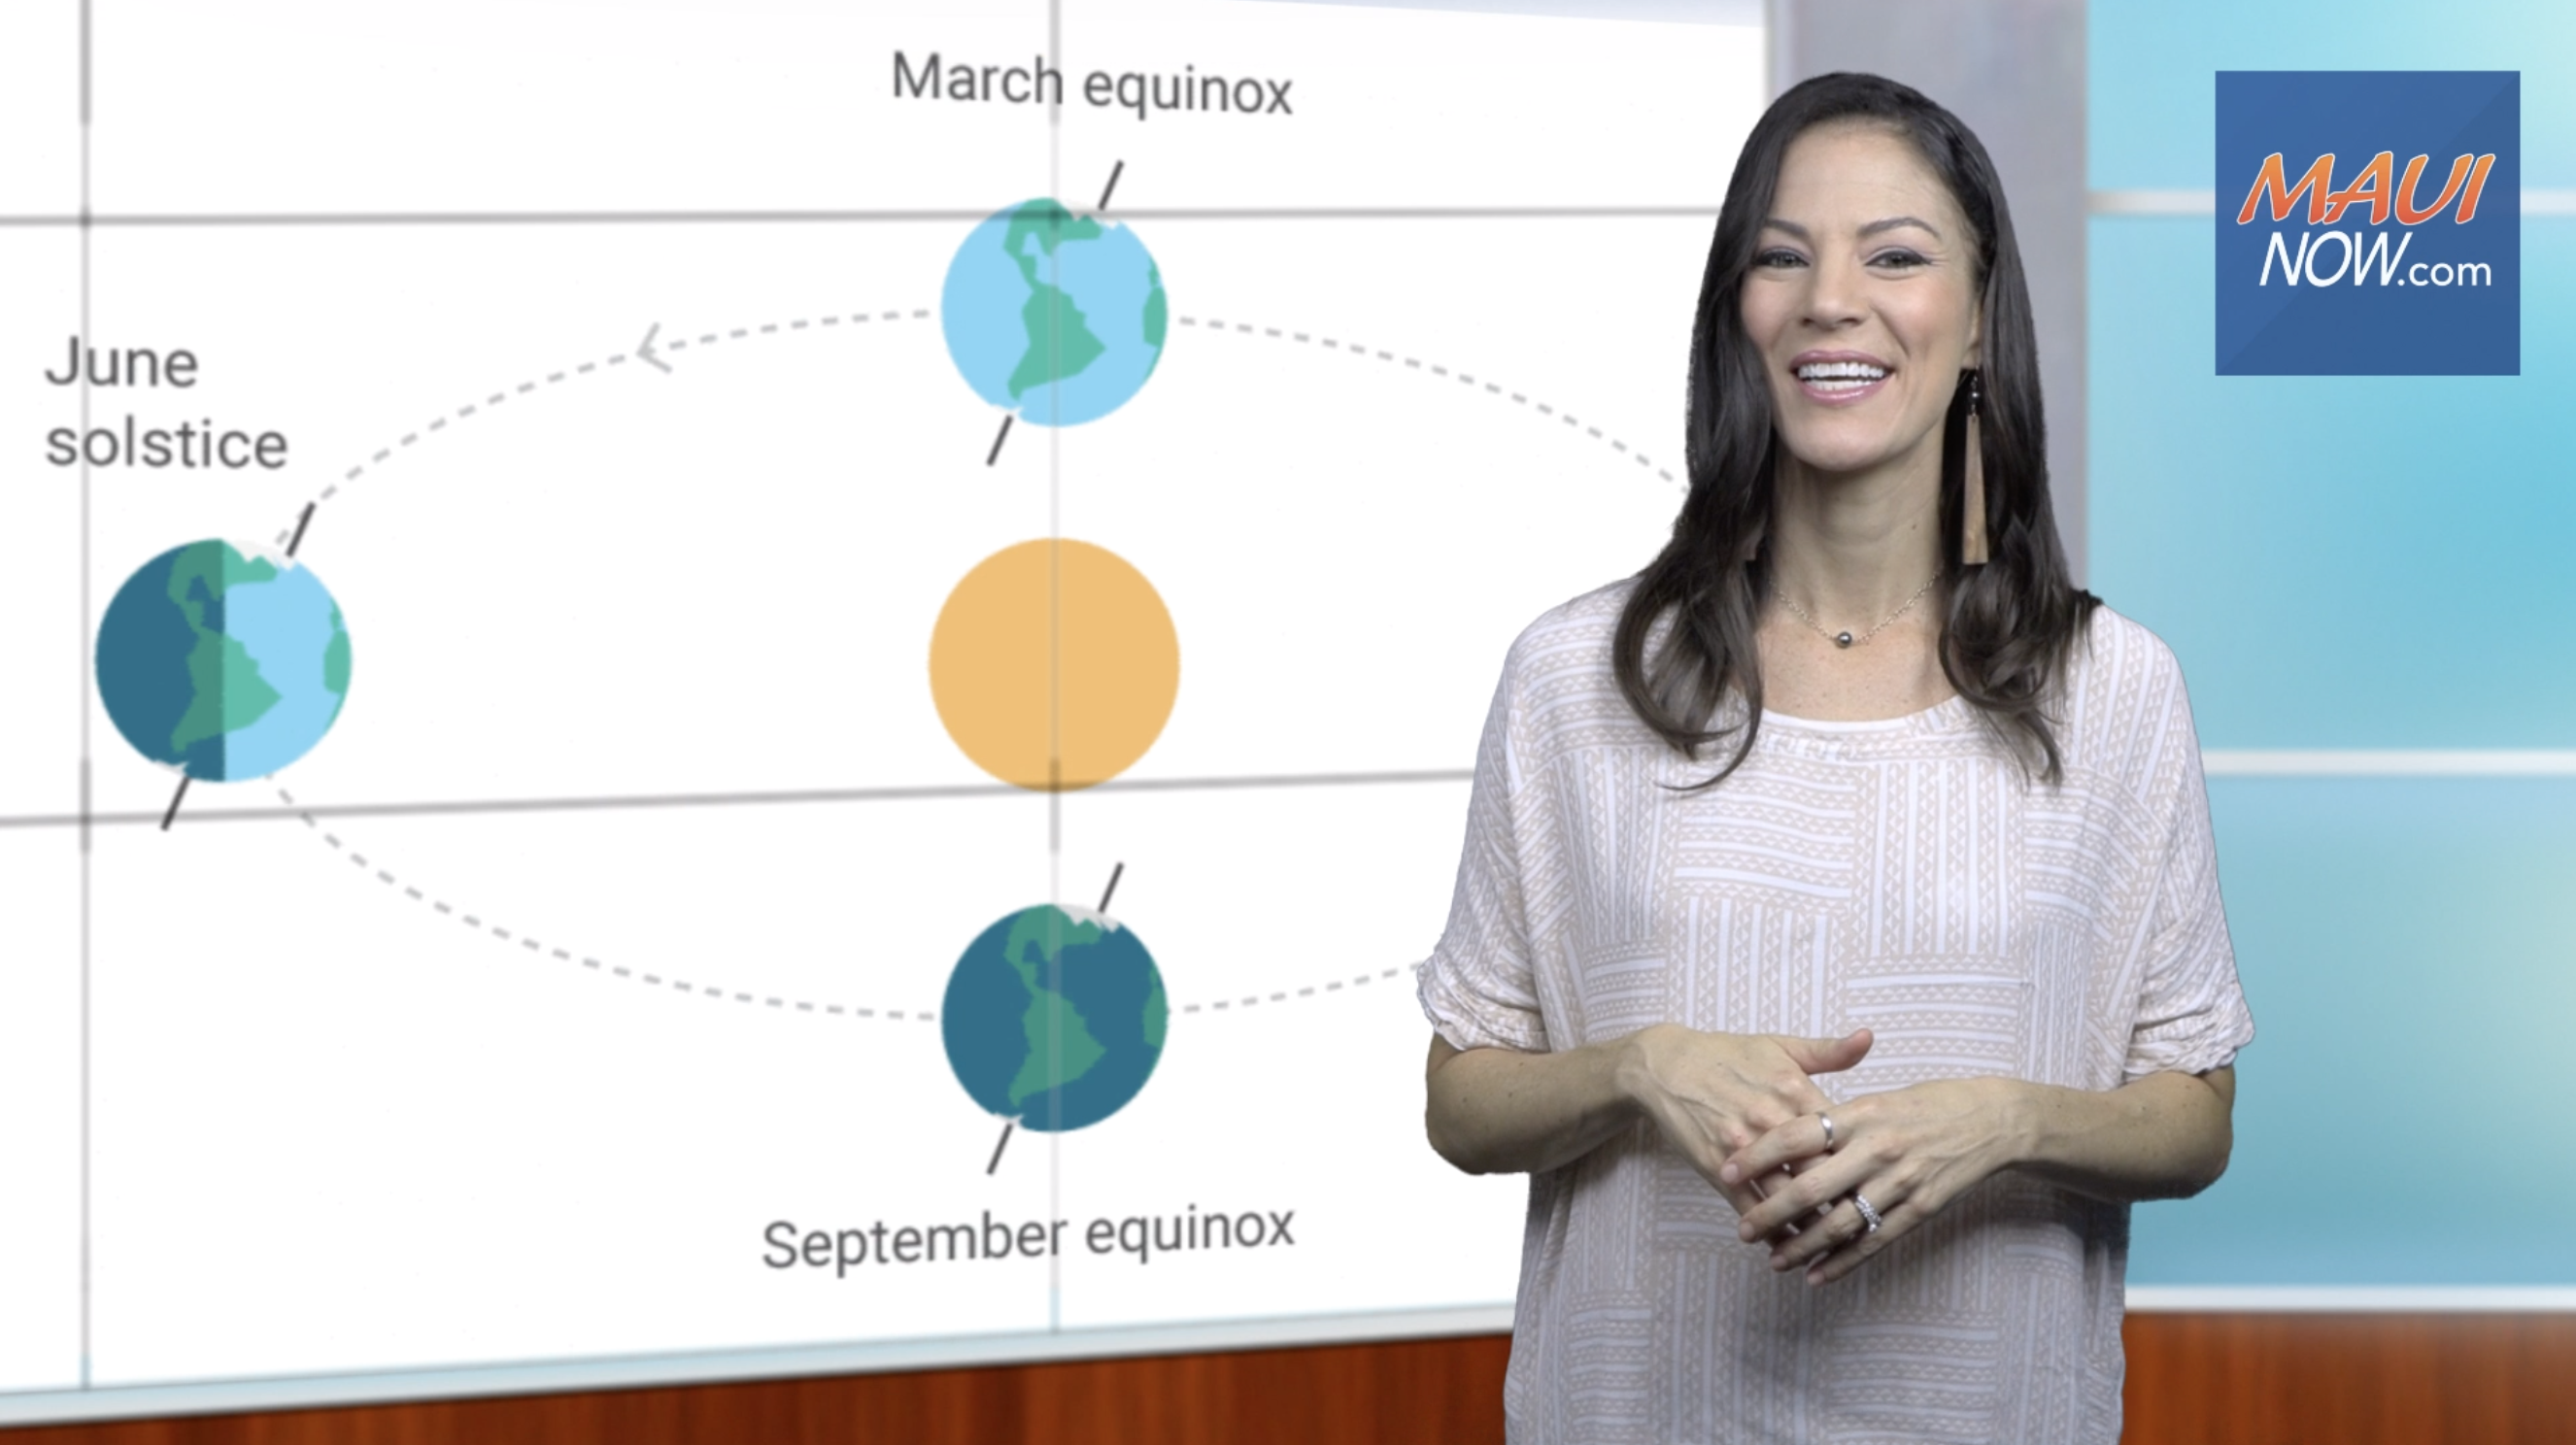 Autumn is Here! Malika Explains the September Equinox